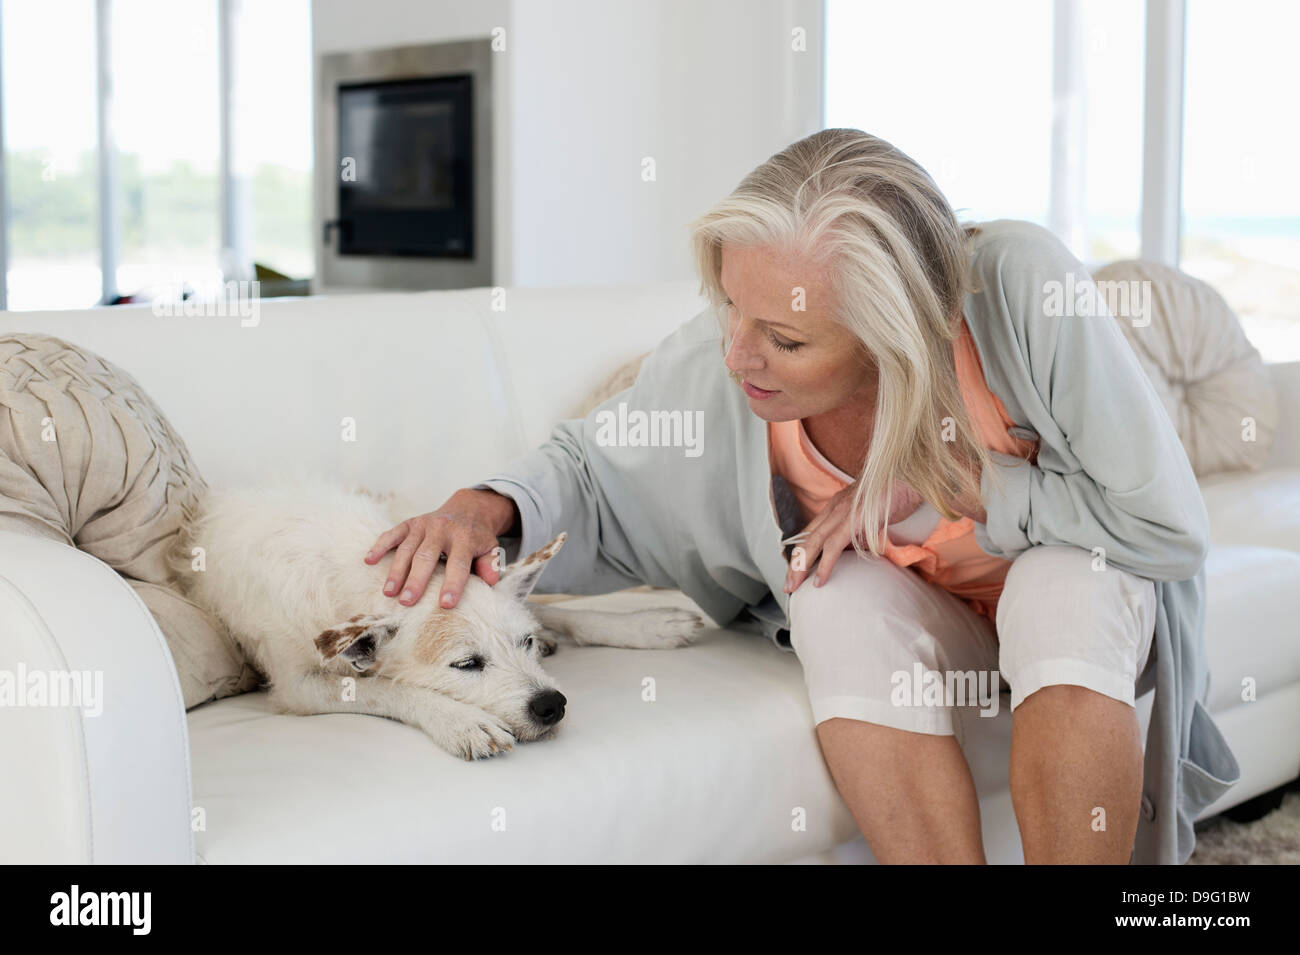 Woman sitting on a couch with her dog - Stock Image